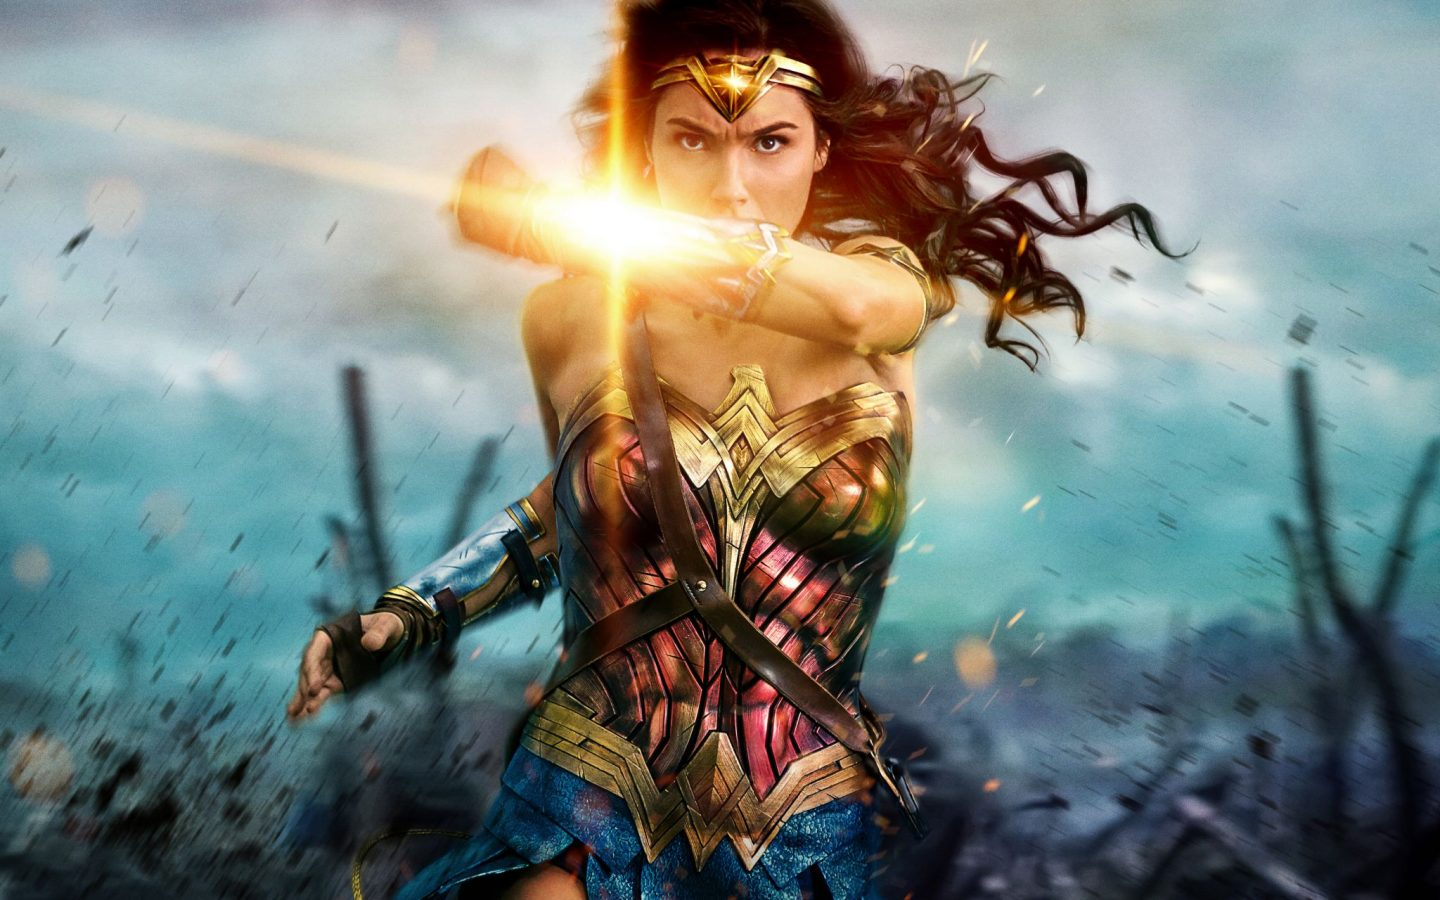 What I Learned From The Wonder Woman Film